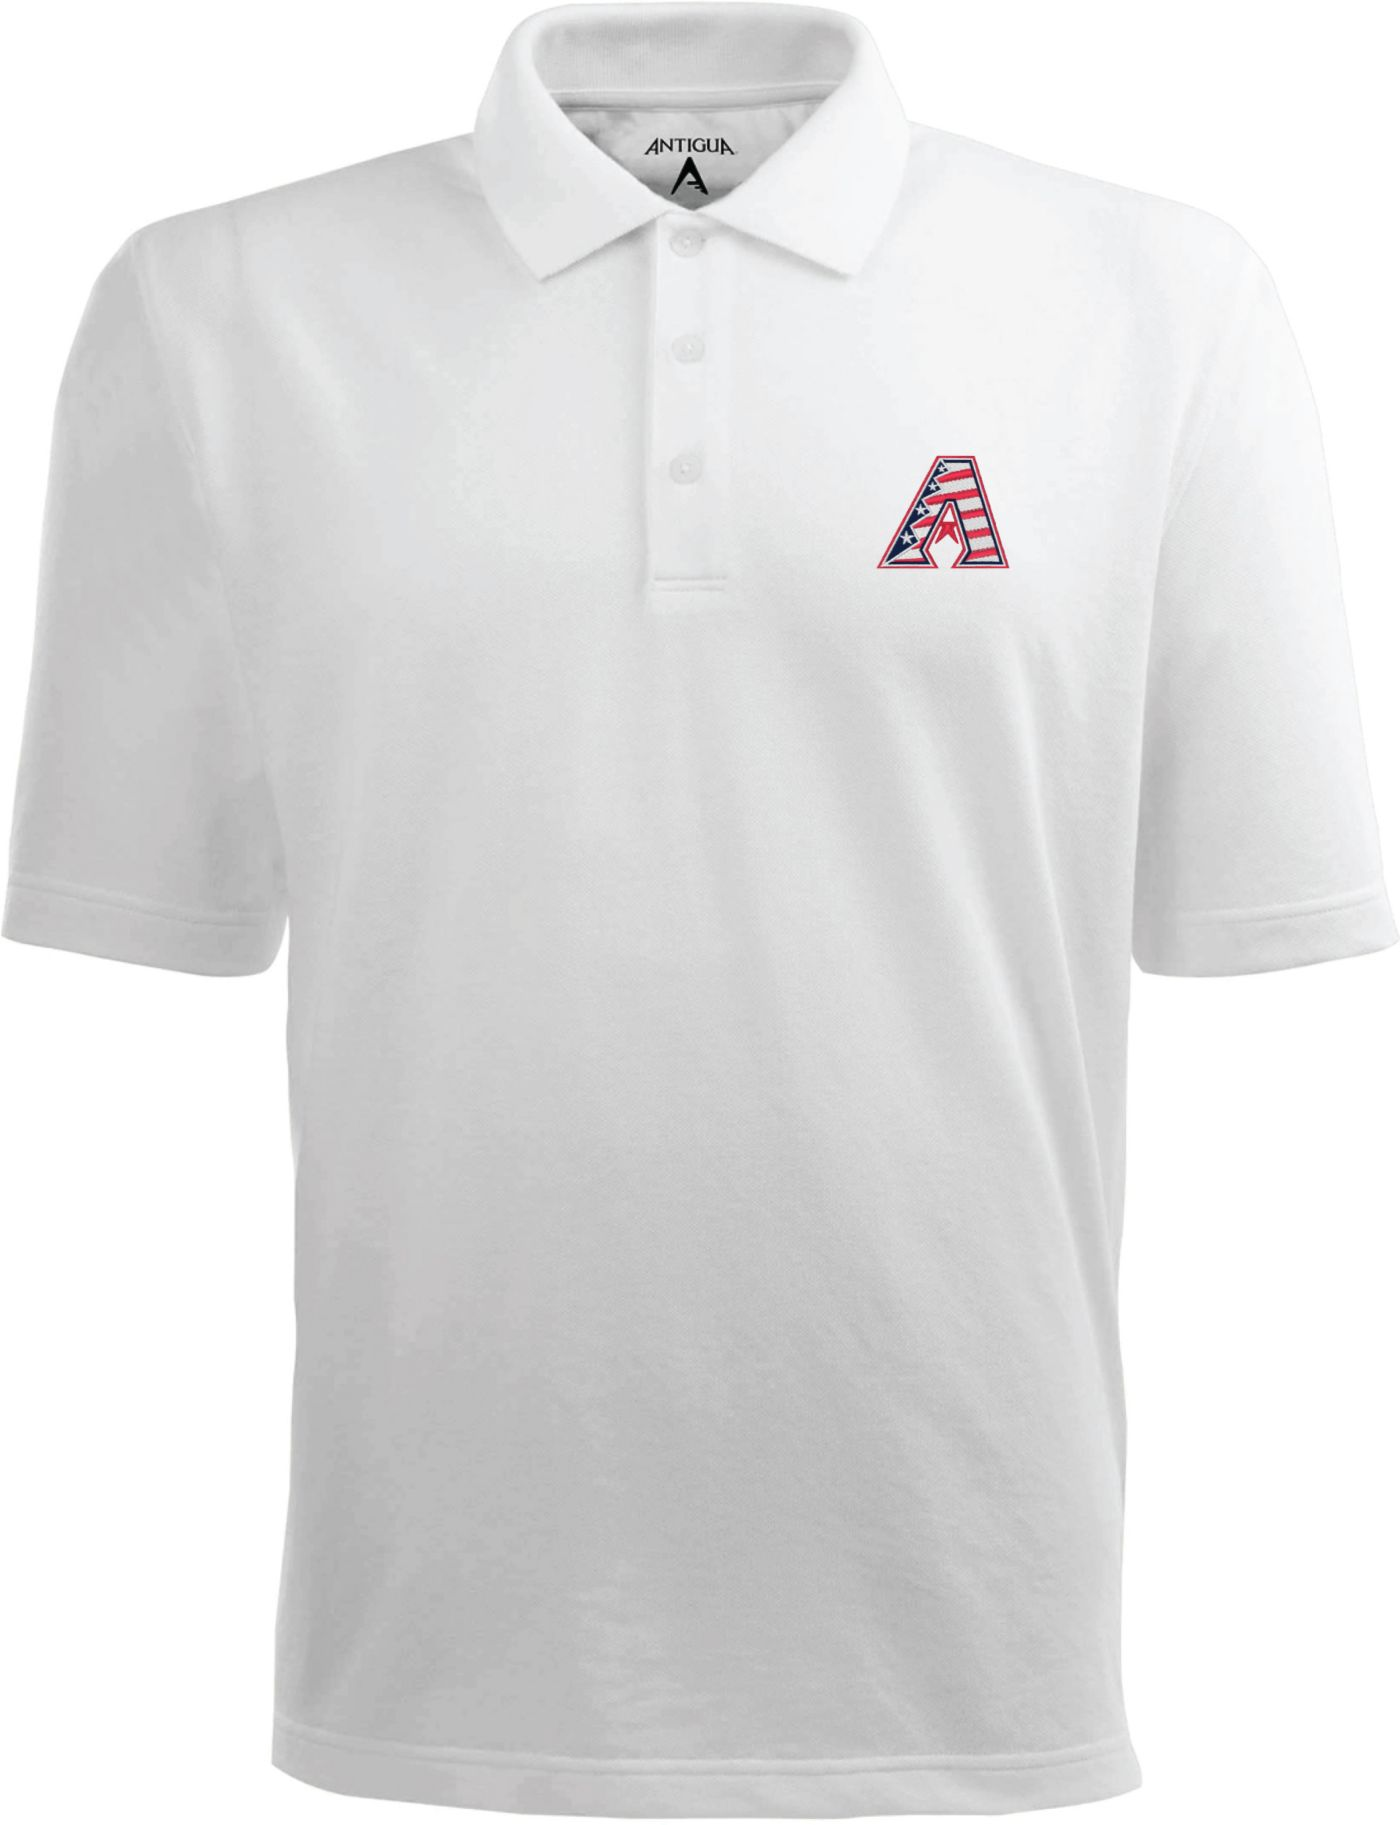 Antigua Men's Arizona Diamondbacks Xtra-Lite Patriotic Logo White Pique Performance Polo